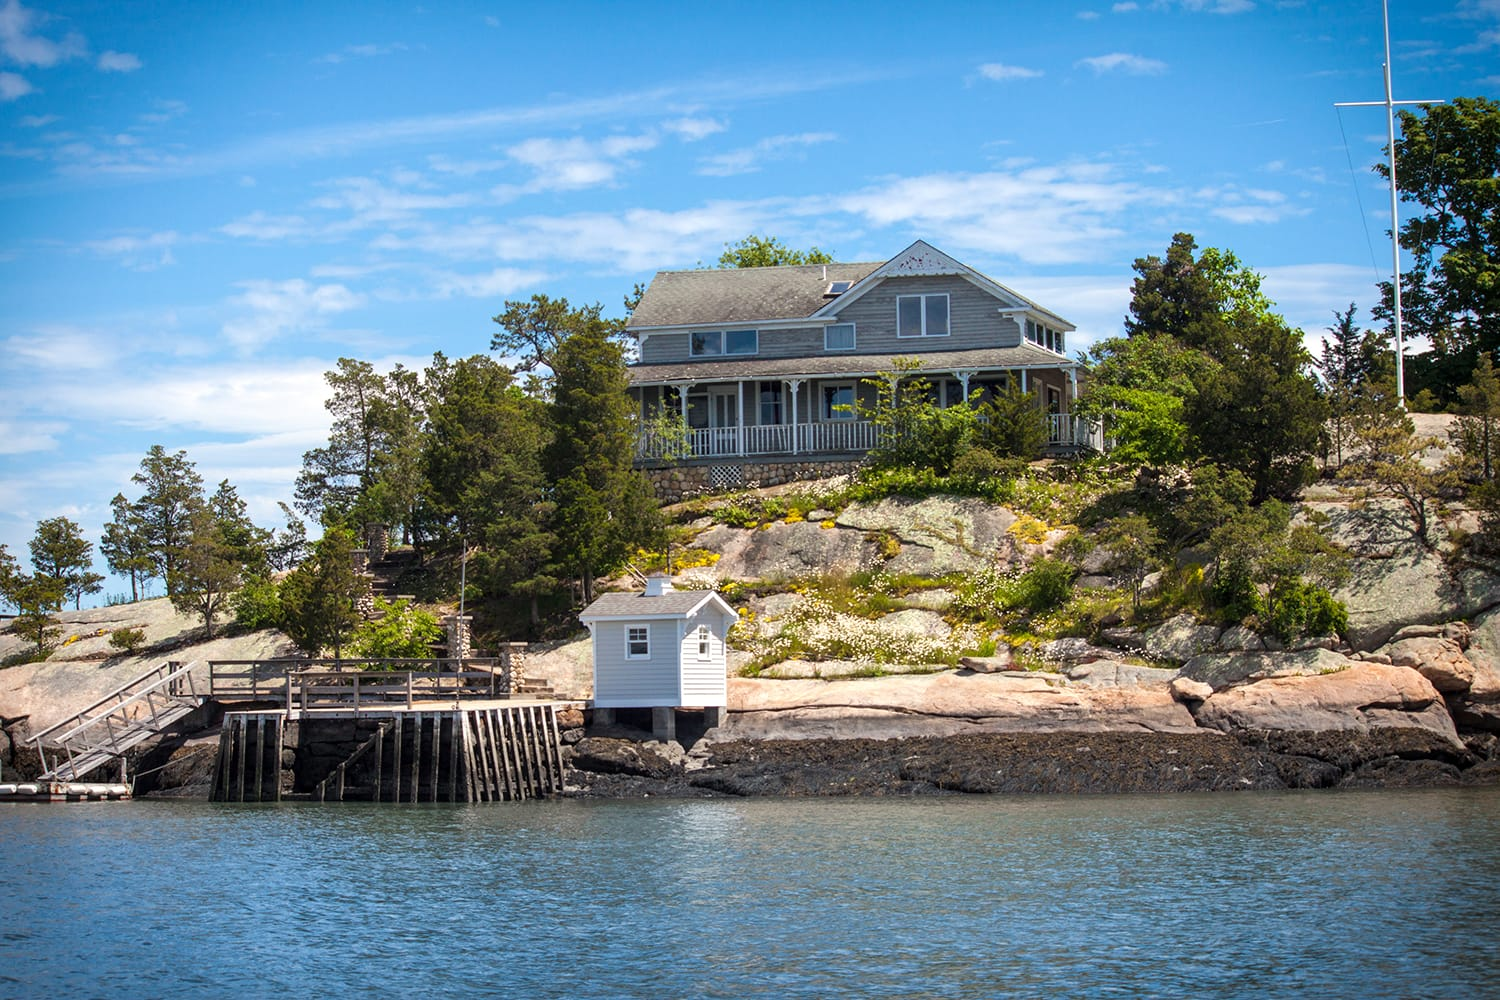 Thimble Island in Connecticut, USA